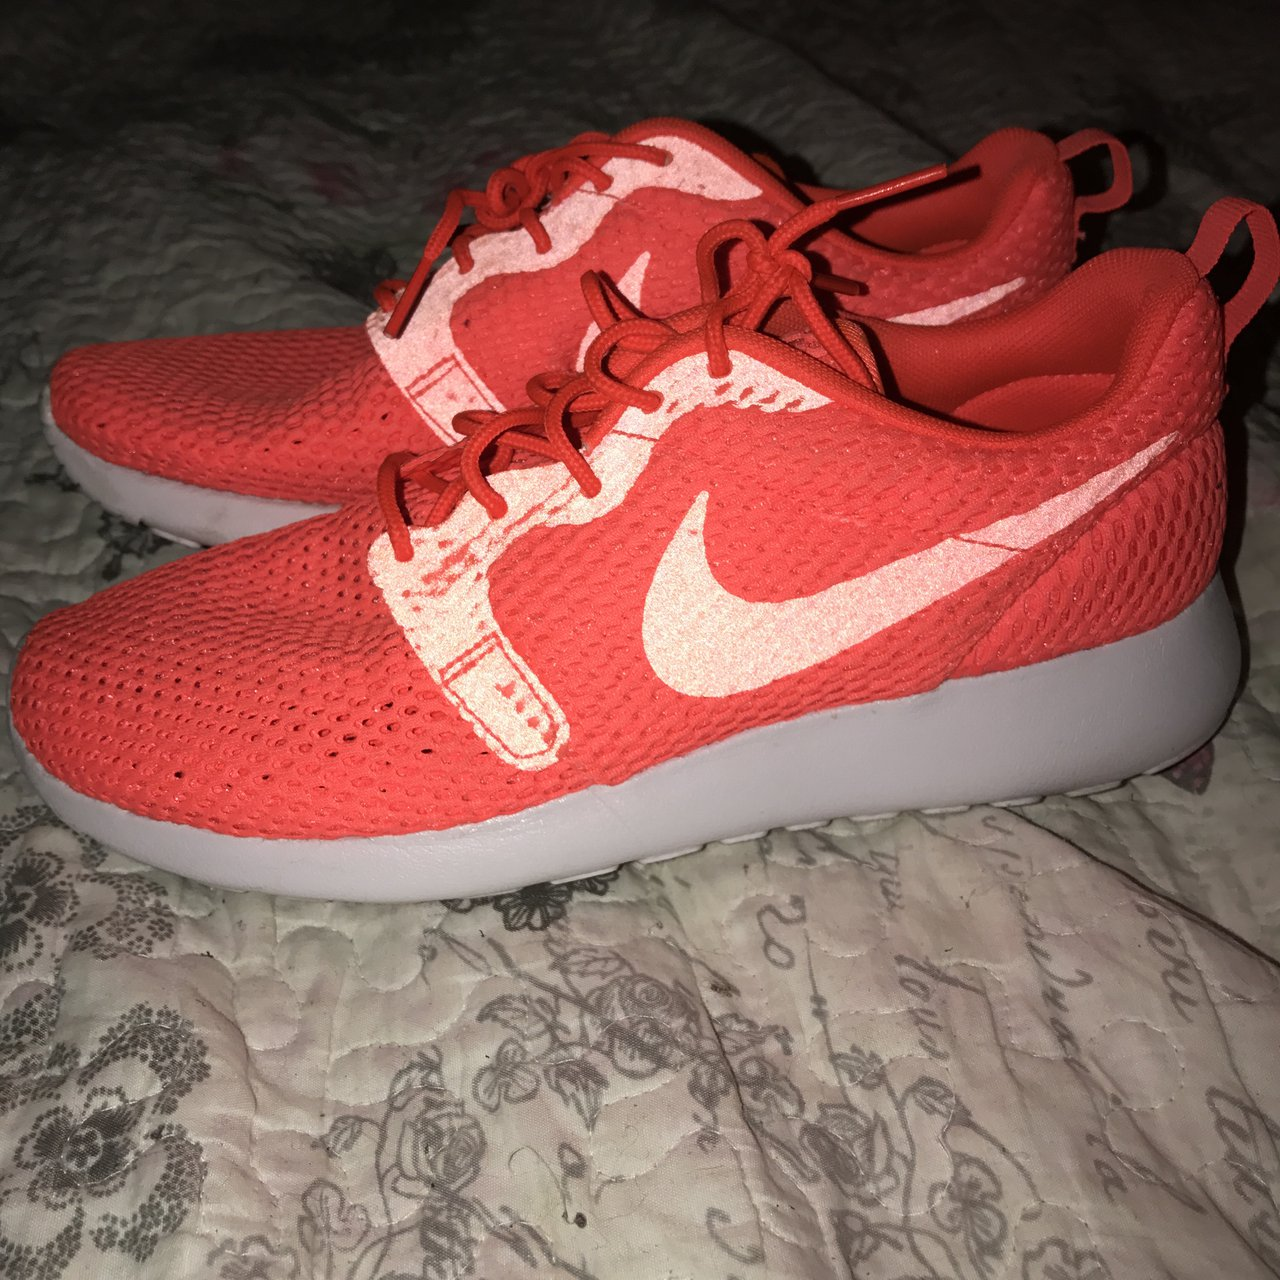 Nike Roshe Runs Women s Size 5.5 but fit size 6 Good Ideal - Depop 95275f9e2